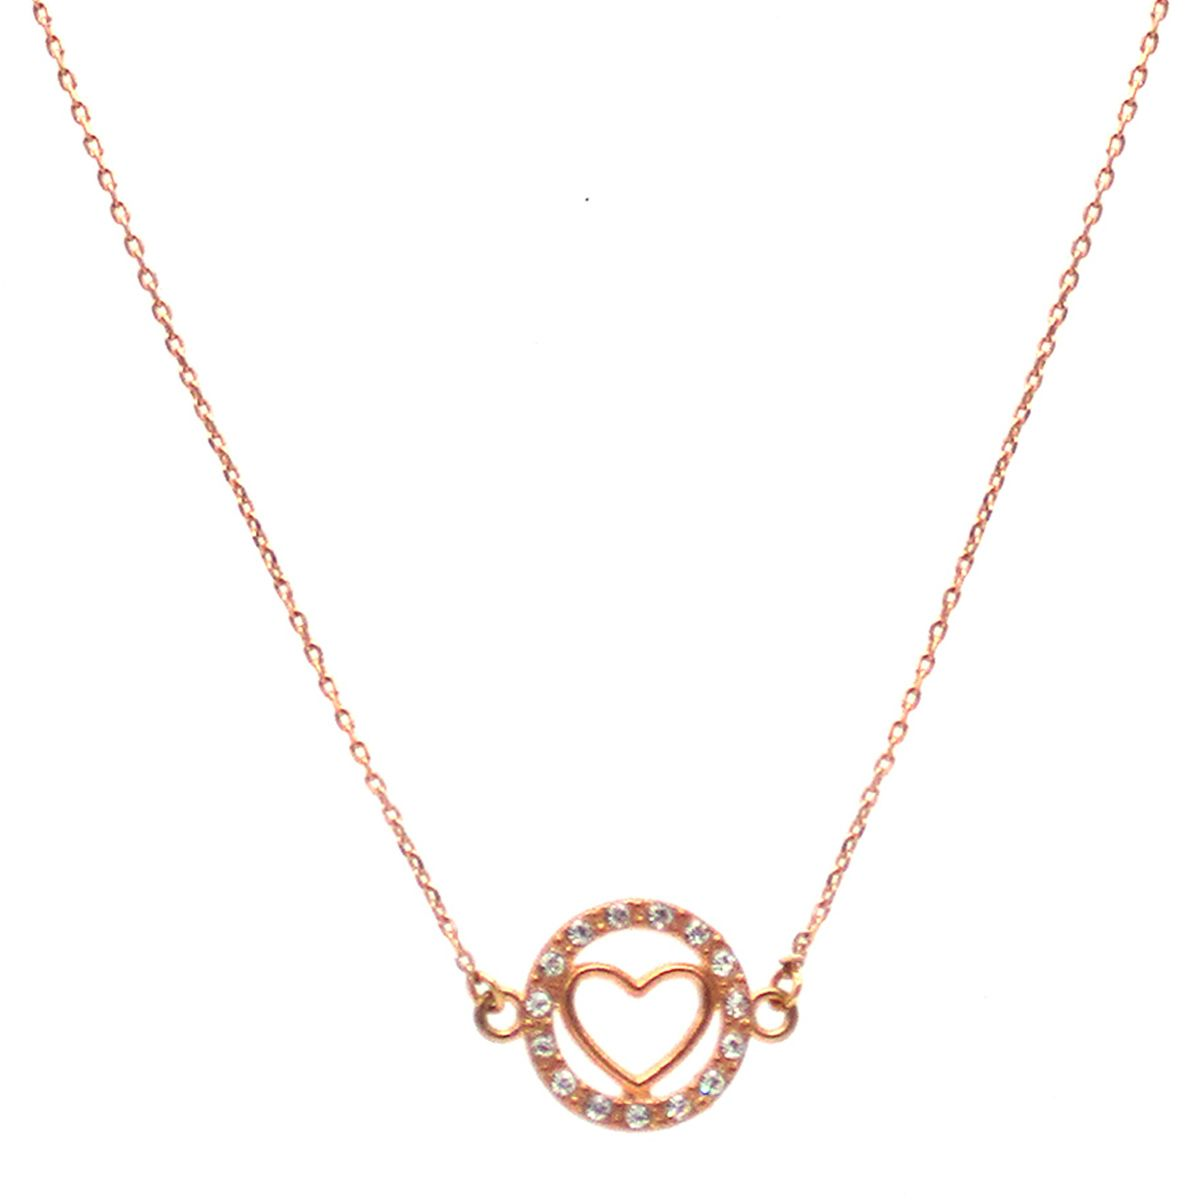 Lotis crystal heart necklace